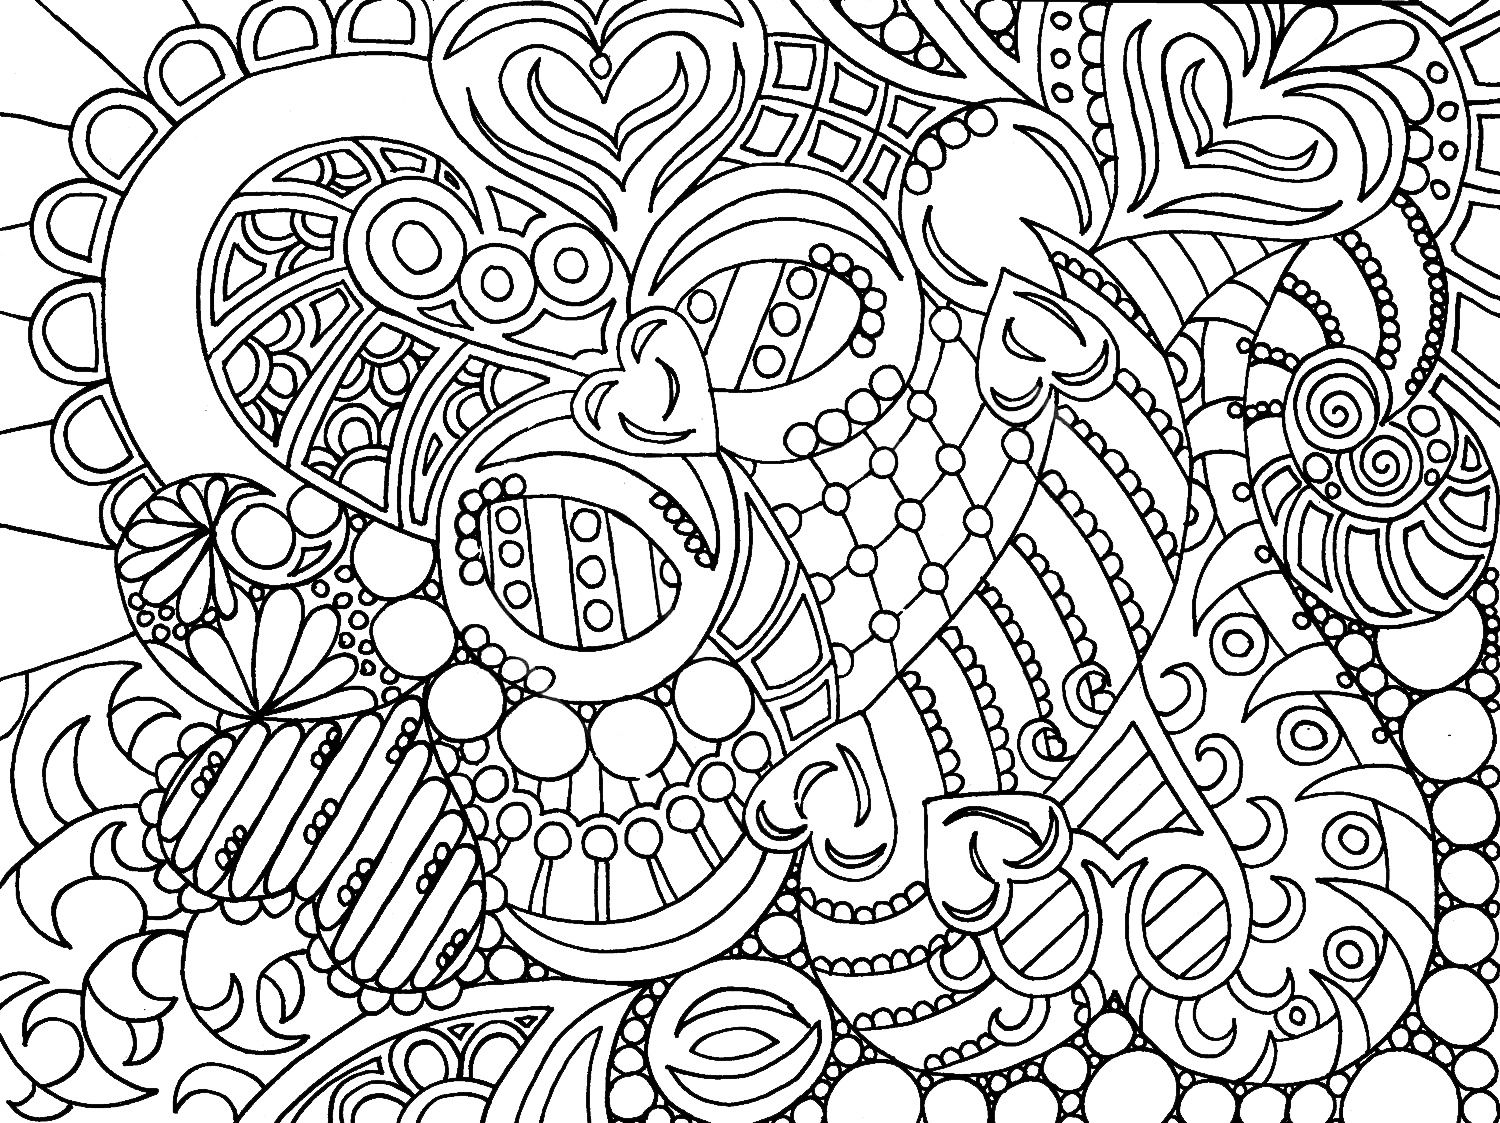 Downloadable Colouring Pages For Relieving Stress And Anxiety ...